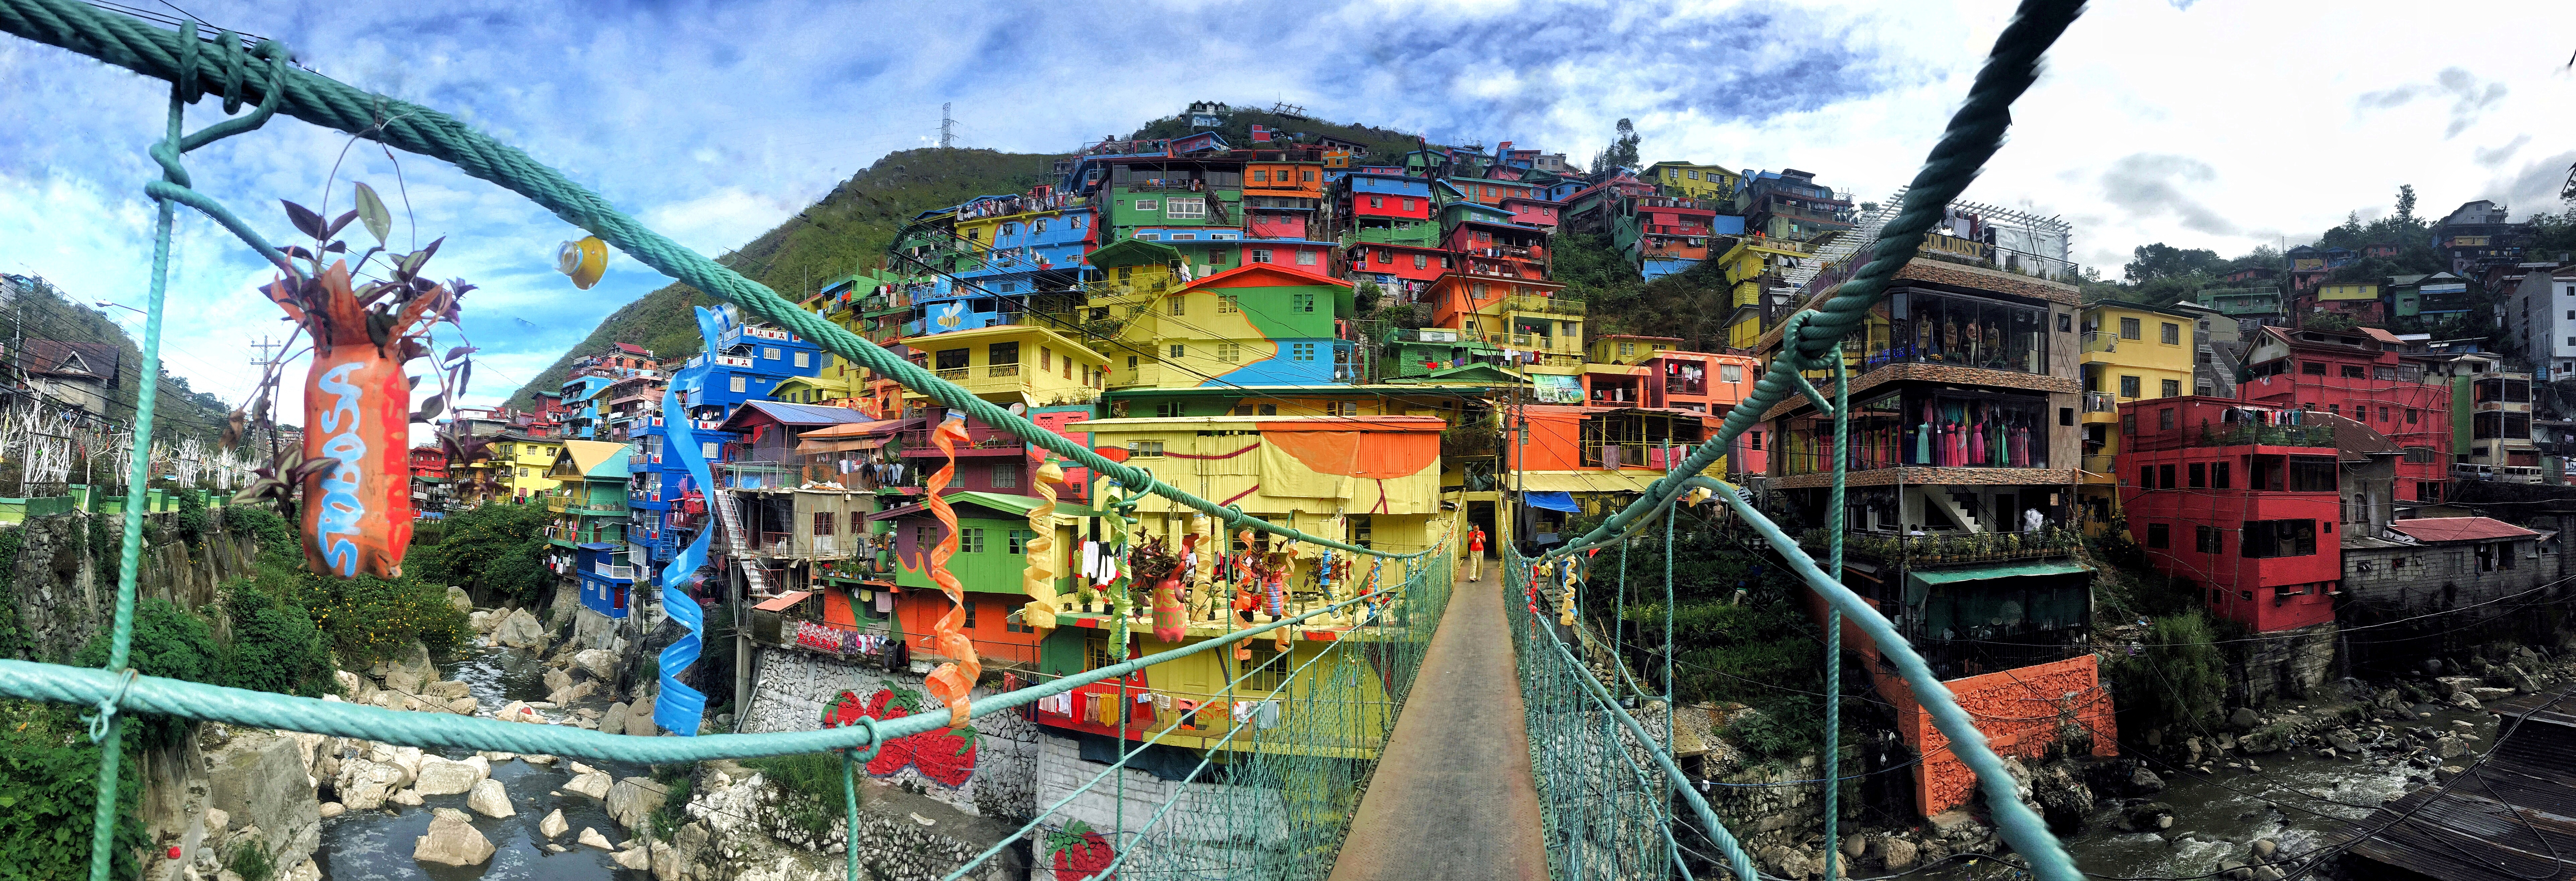 Visit the Valley of Colors